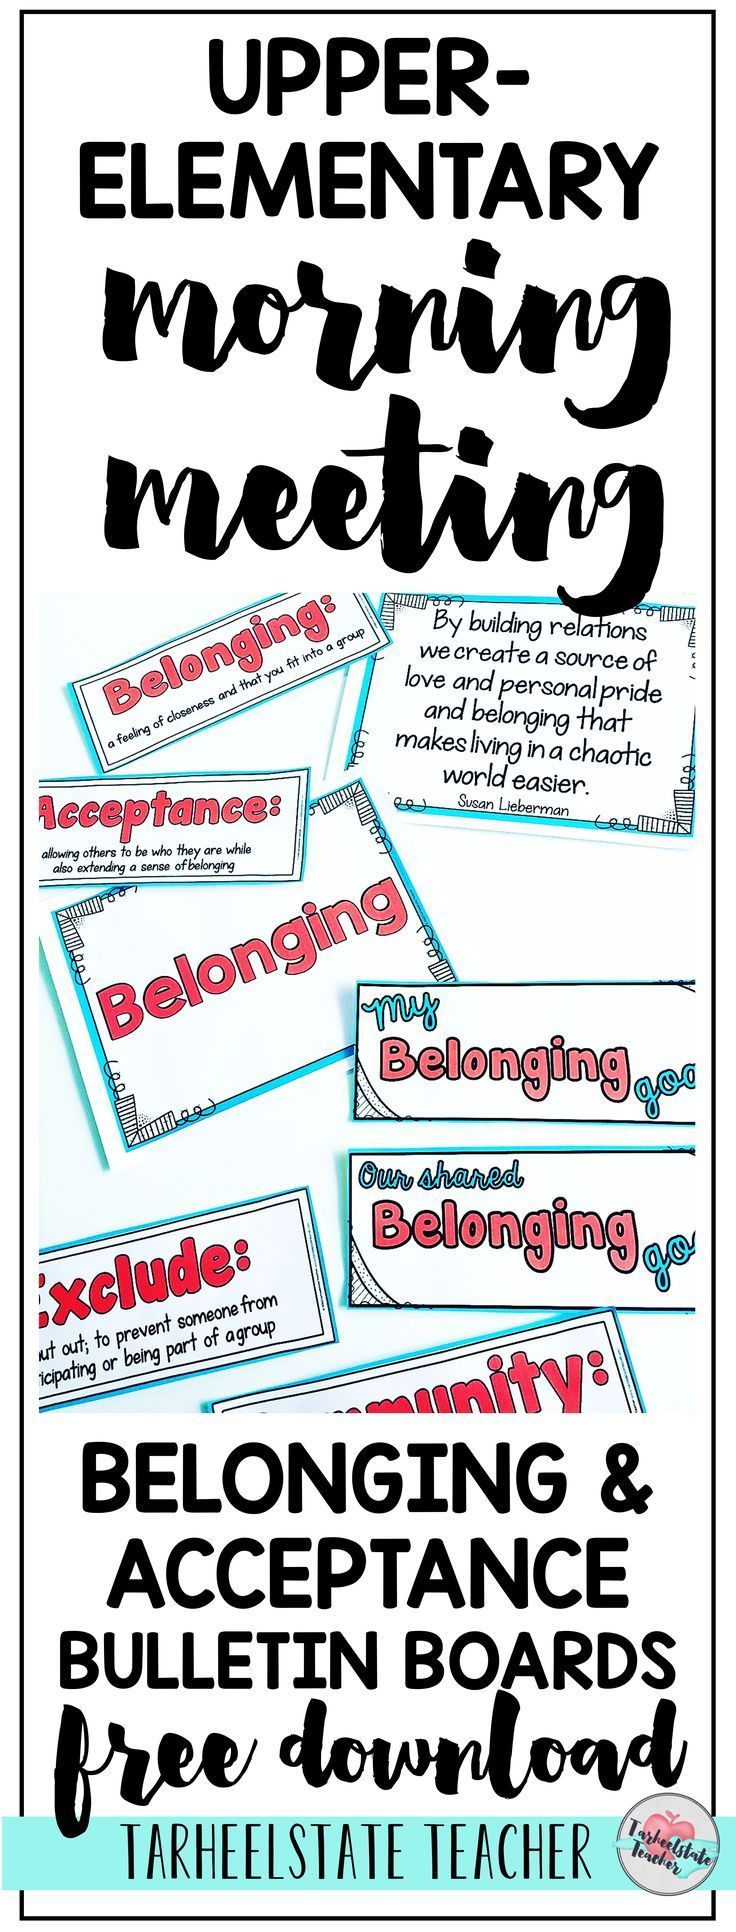 FREE CLASSROOM COMMUNITY BULLETIN BOARD SET for morning meeting   Belonging & Accepting Others Quotes and lesson ideas   Teaching kindness in the classroom through themes in literature, read alouds, and morning meeting; these Morning Meeting lesson ideas